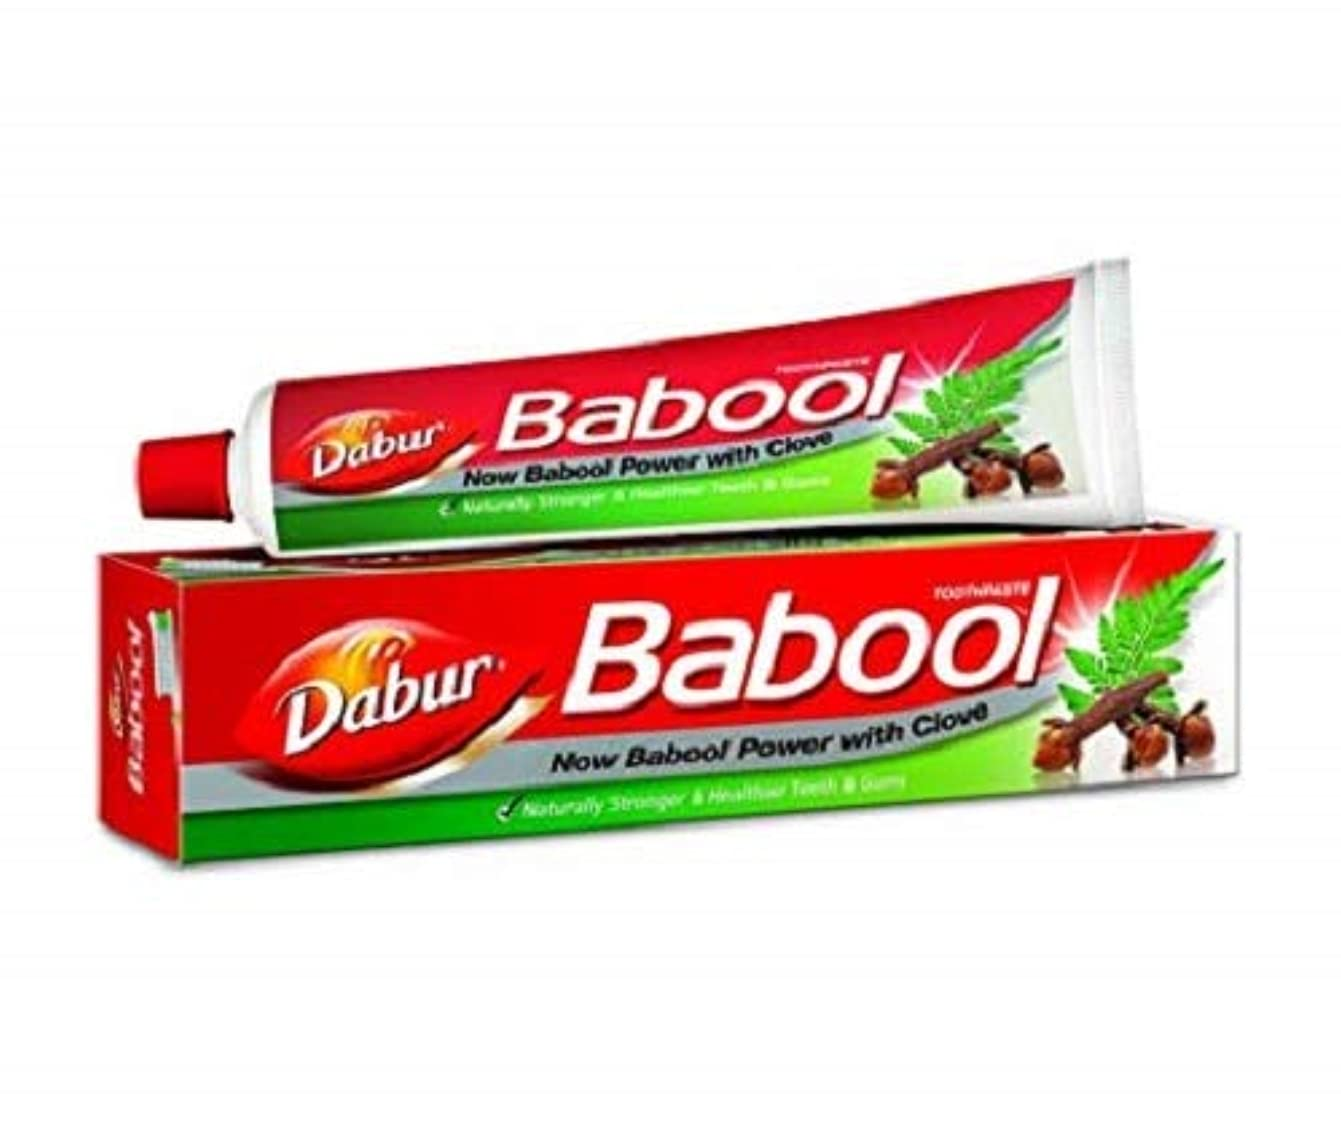 Babool Toothpaste 190g toothpaste by Dabur